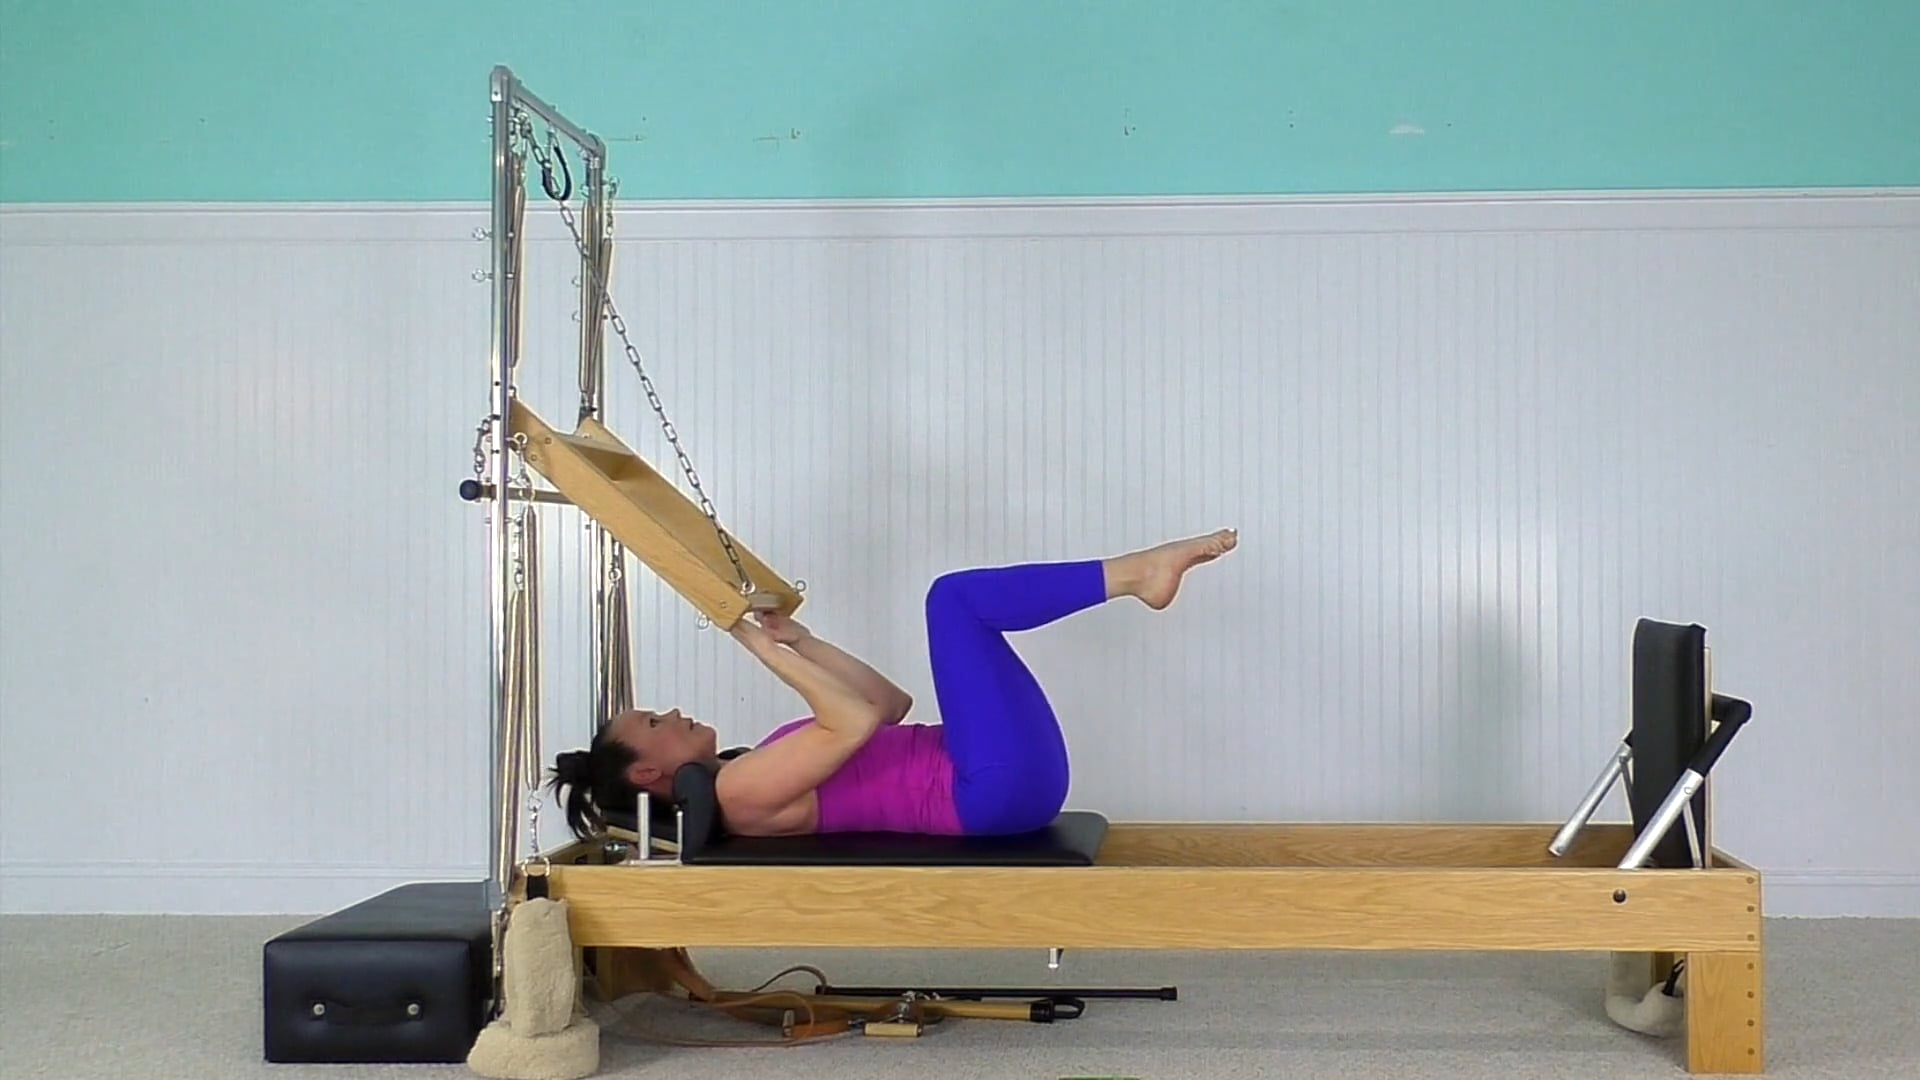 Reformer/Tower HIIT with the Jumpboard